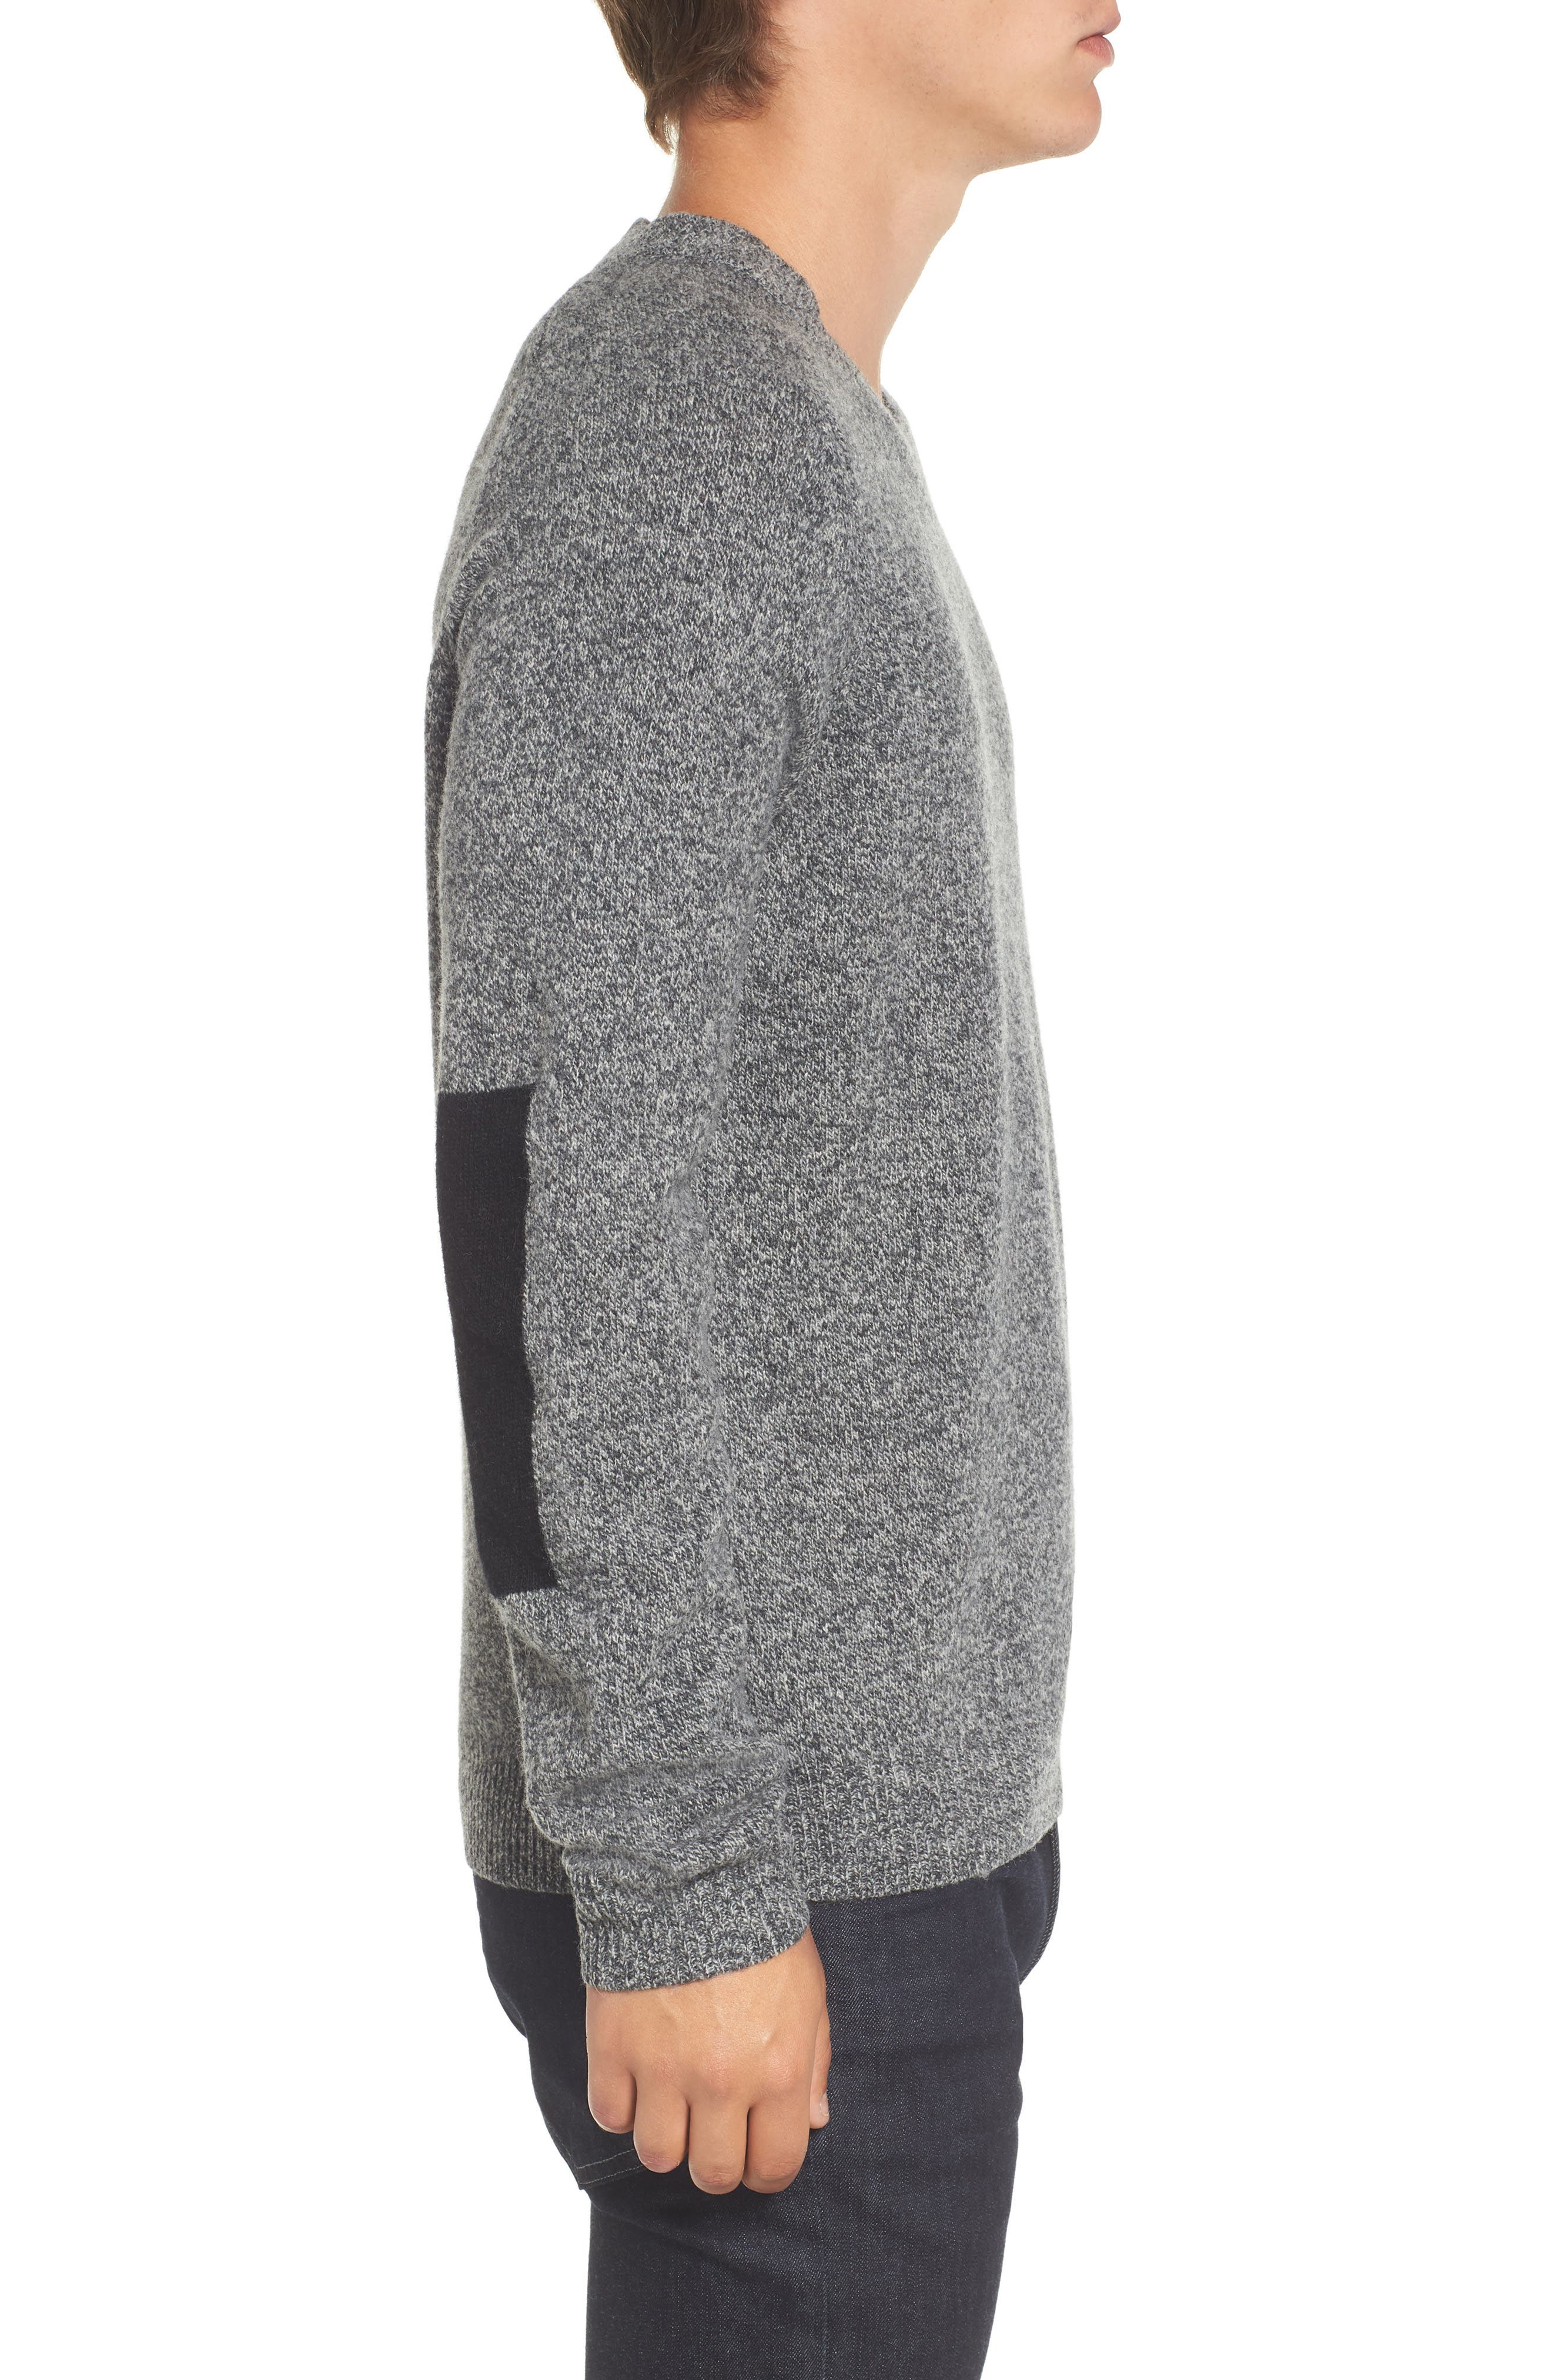 Elbow Patch Sweater,                             Alternate thumbnail 3, color,                             Charcoal Twist/ Black